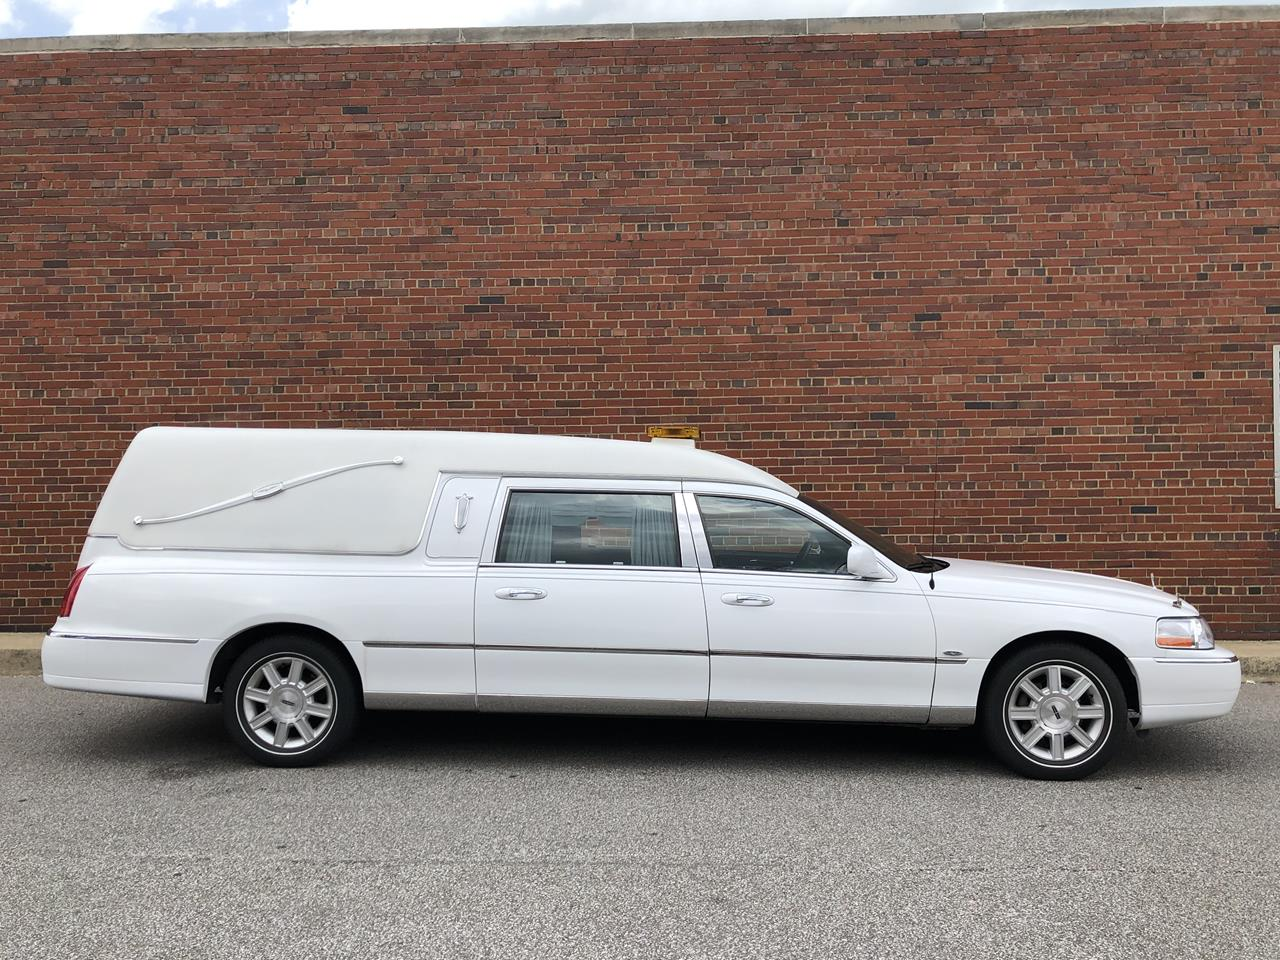 2007 Lincoln Eagle Kingsley Hearse